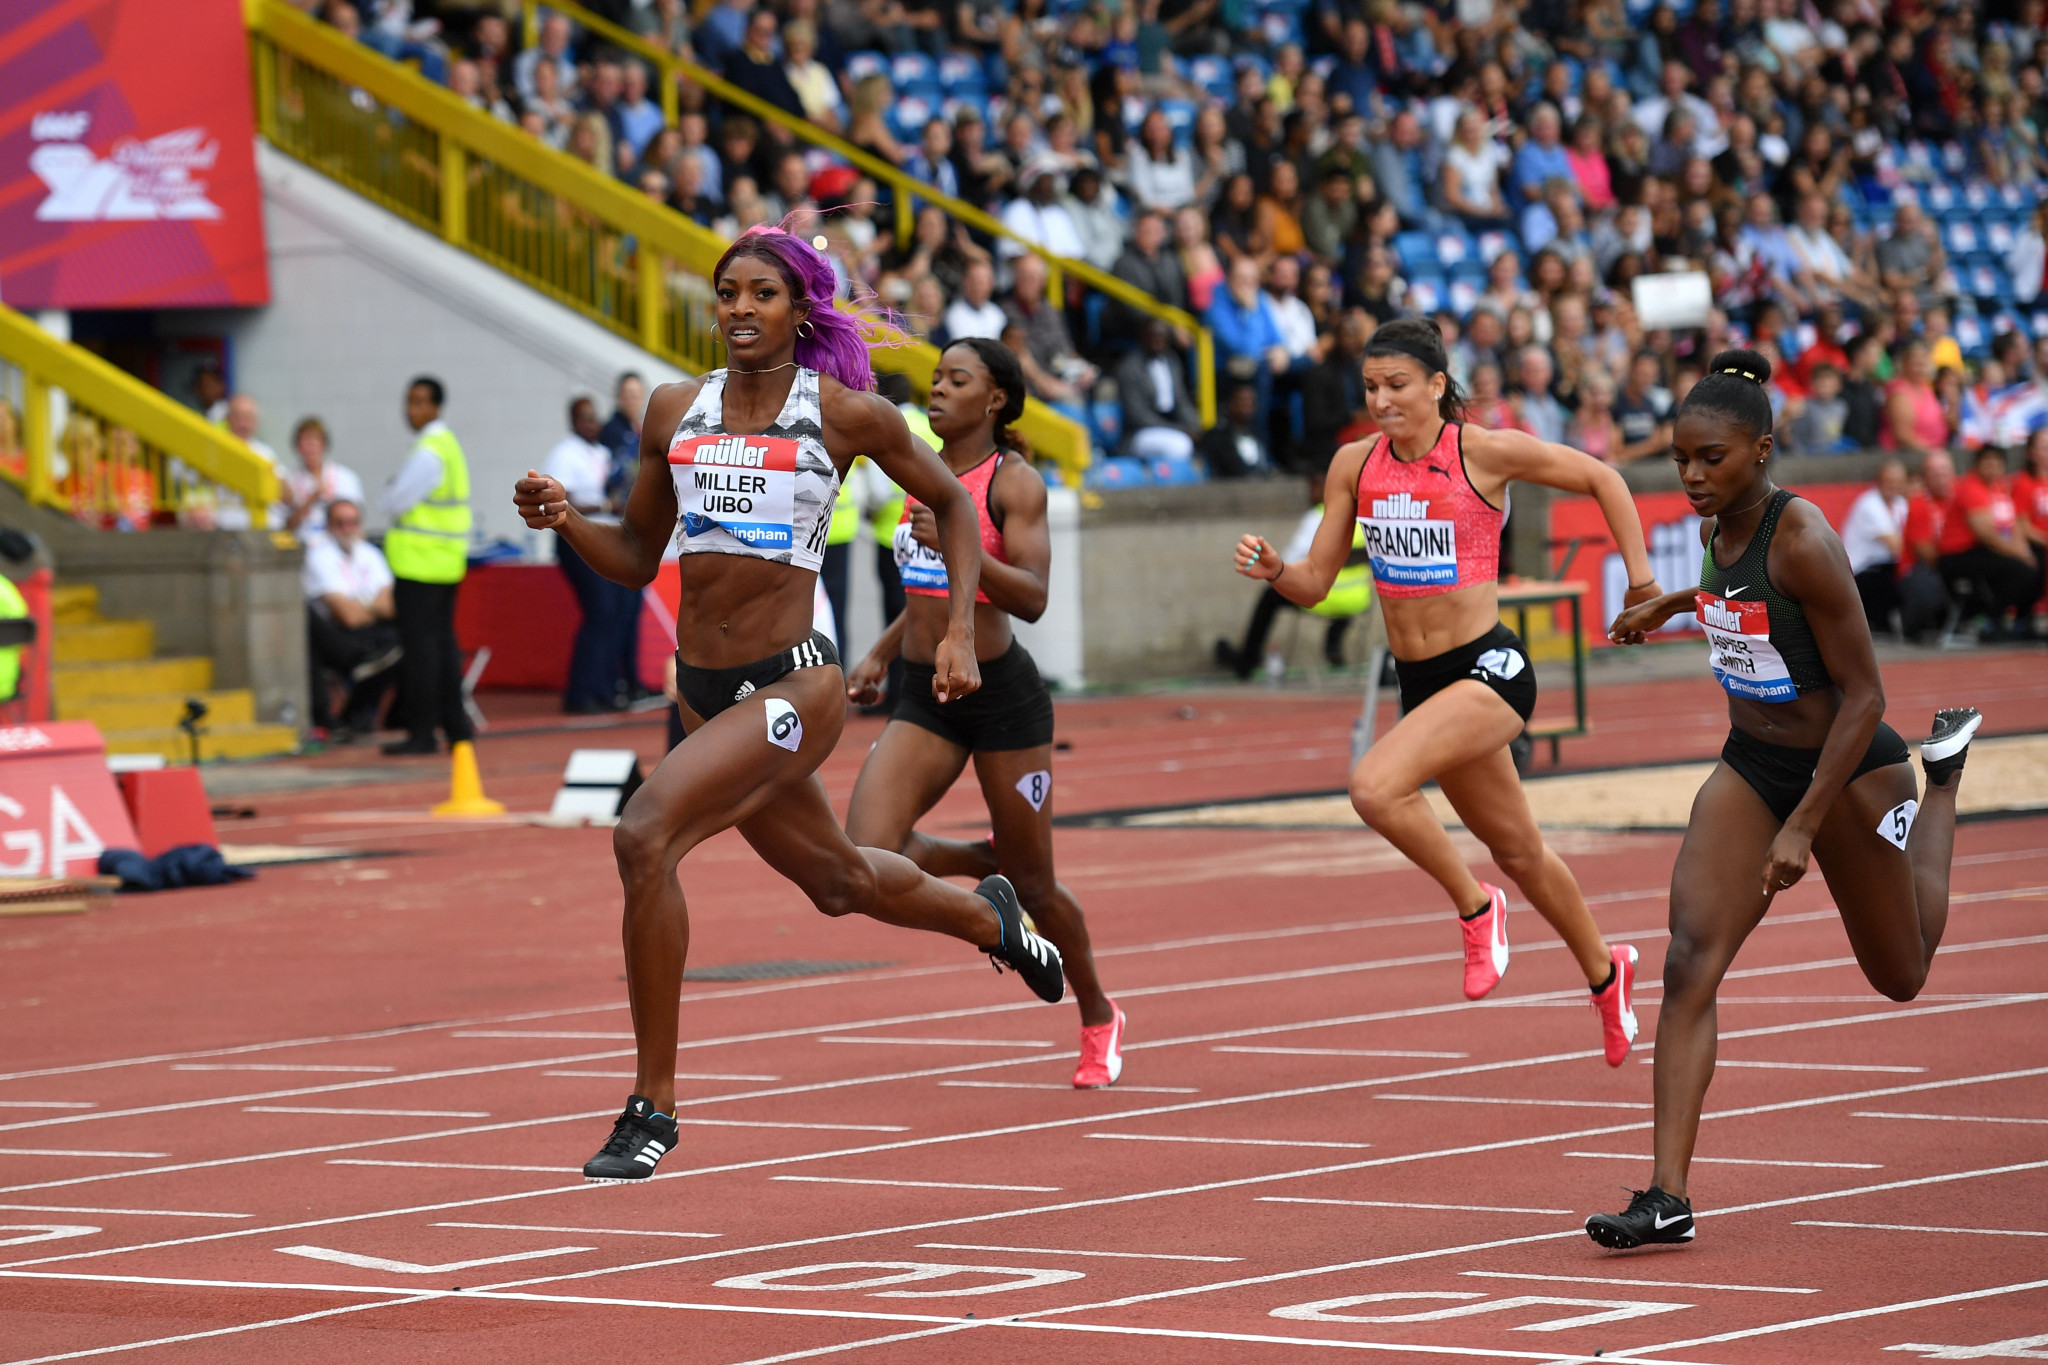 Stellar women's 200m set to headline IAAF Diamond League meeting in Birmingham